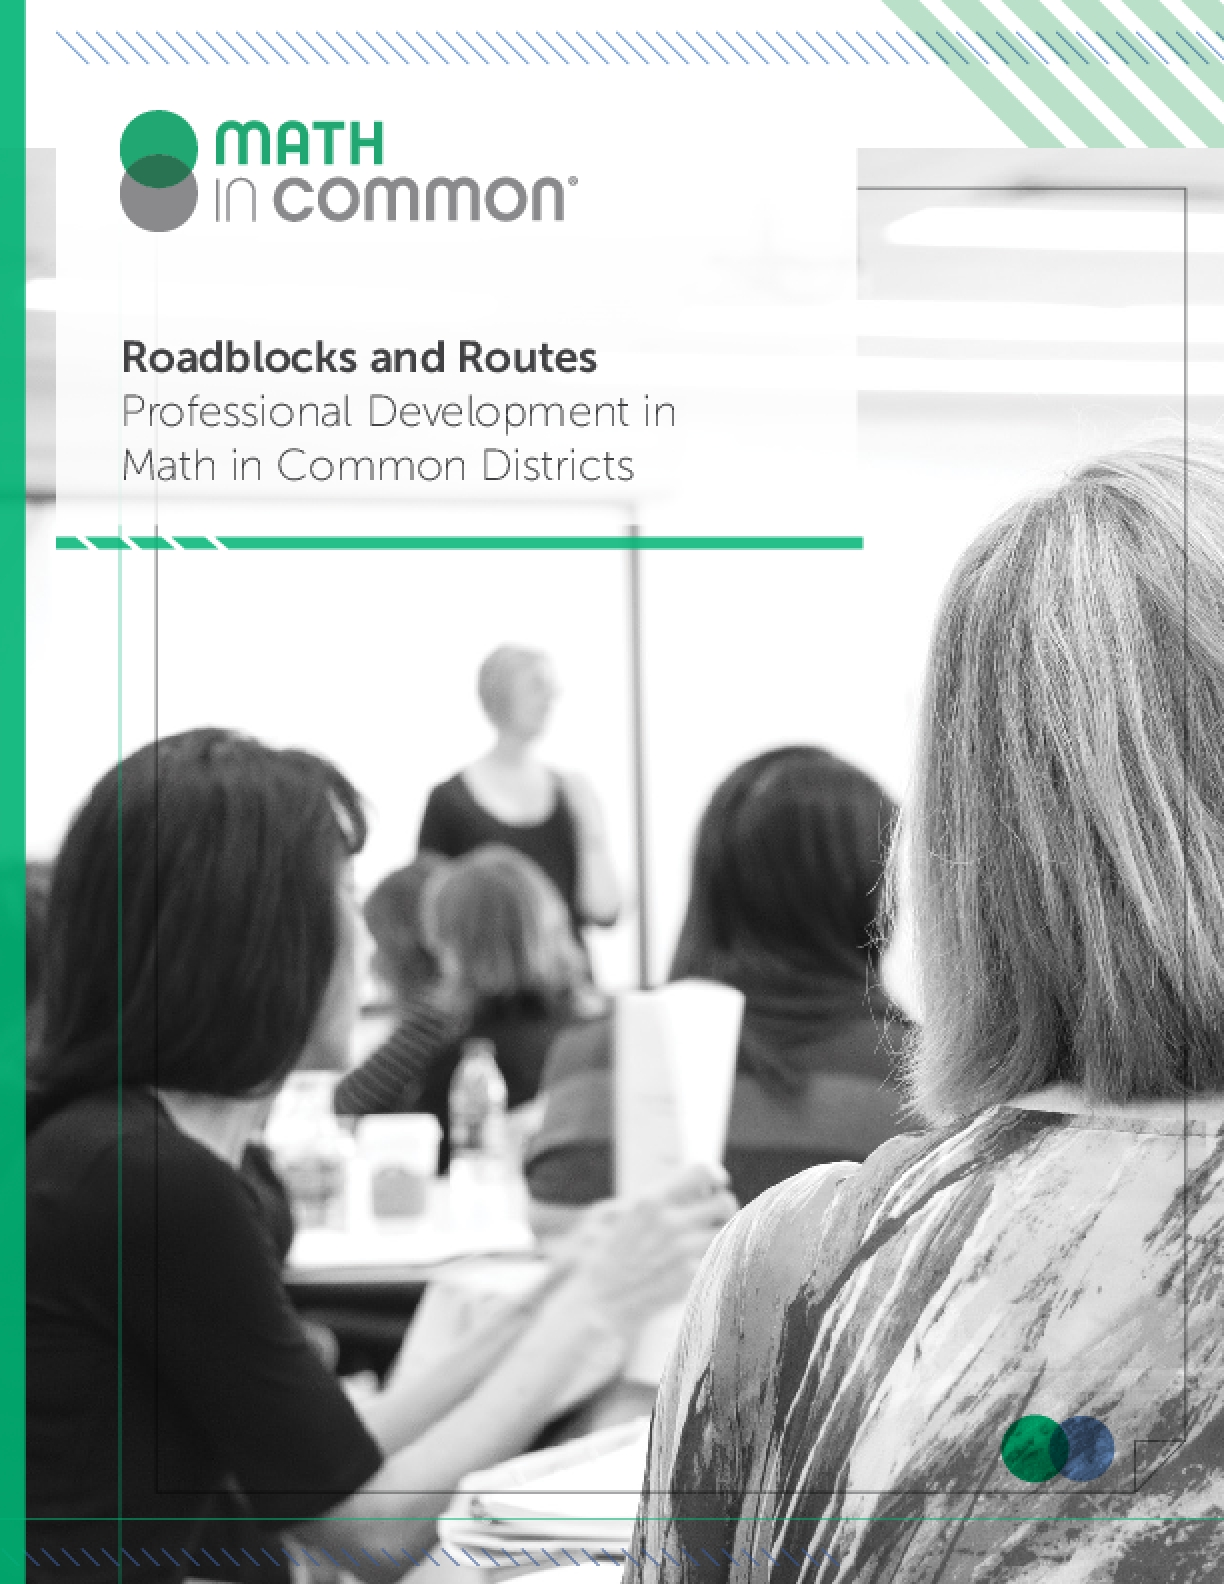 Roadblocks and Routes: Professional Development in Math in Common Districts